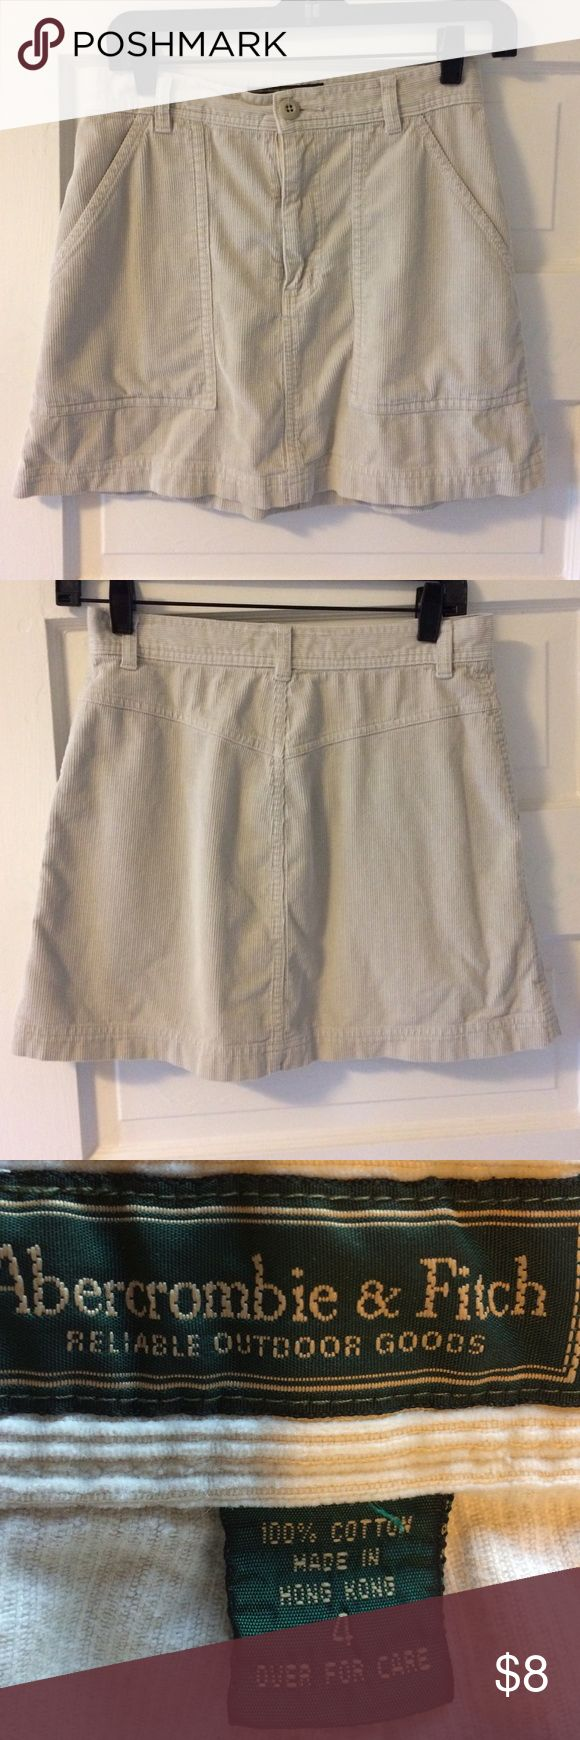 Abercrombie & Fitch Corduroy Skirt Gently used staple! Abercrombie & Fitch Skirts